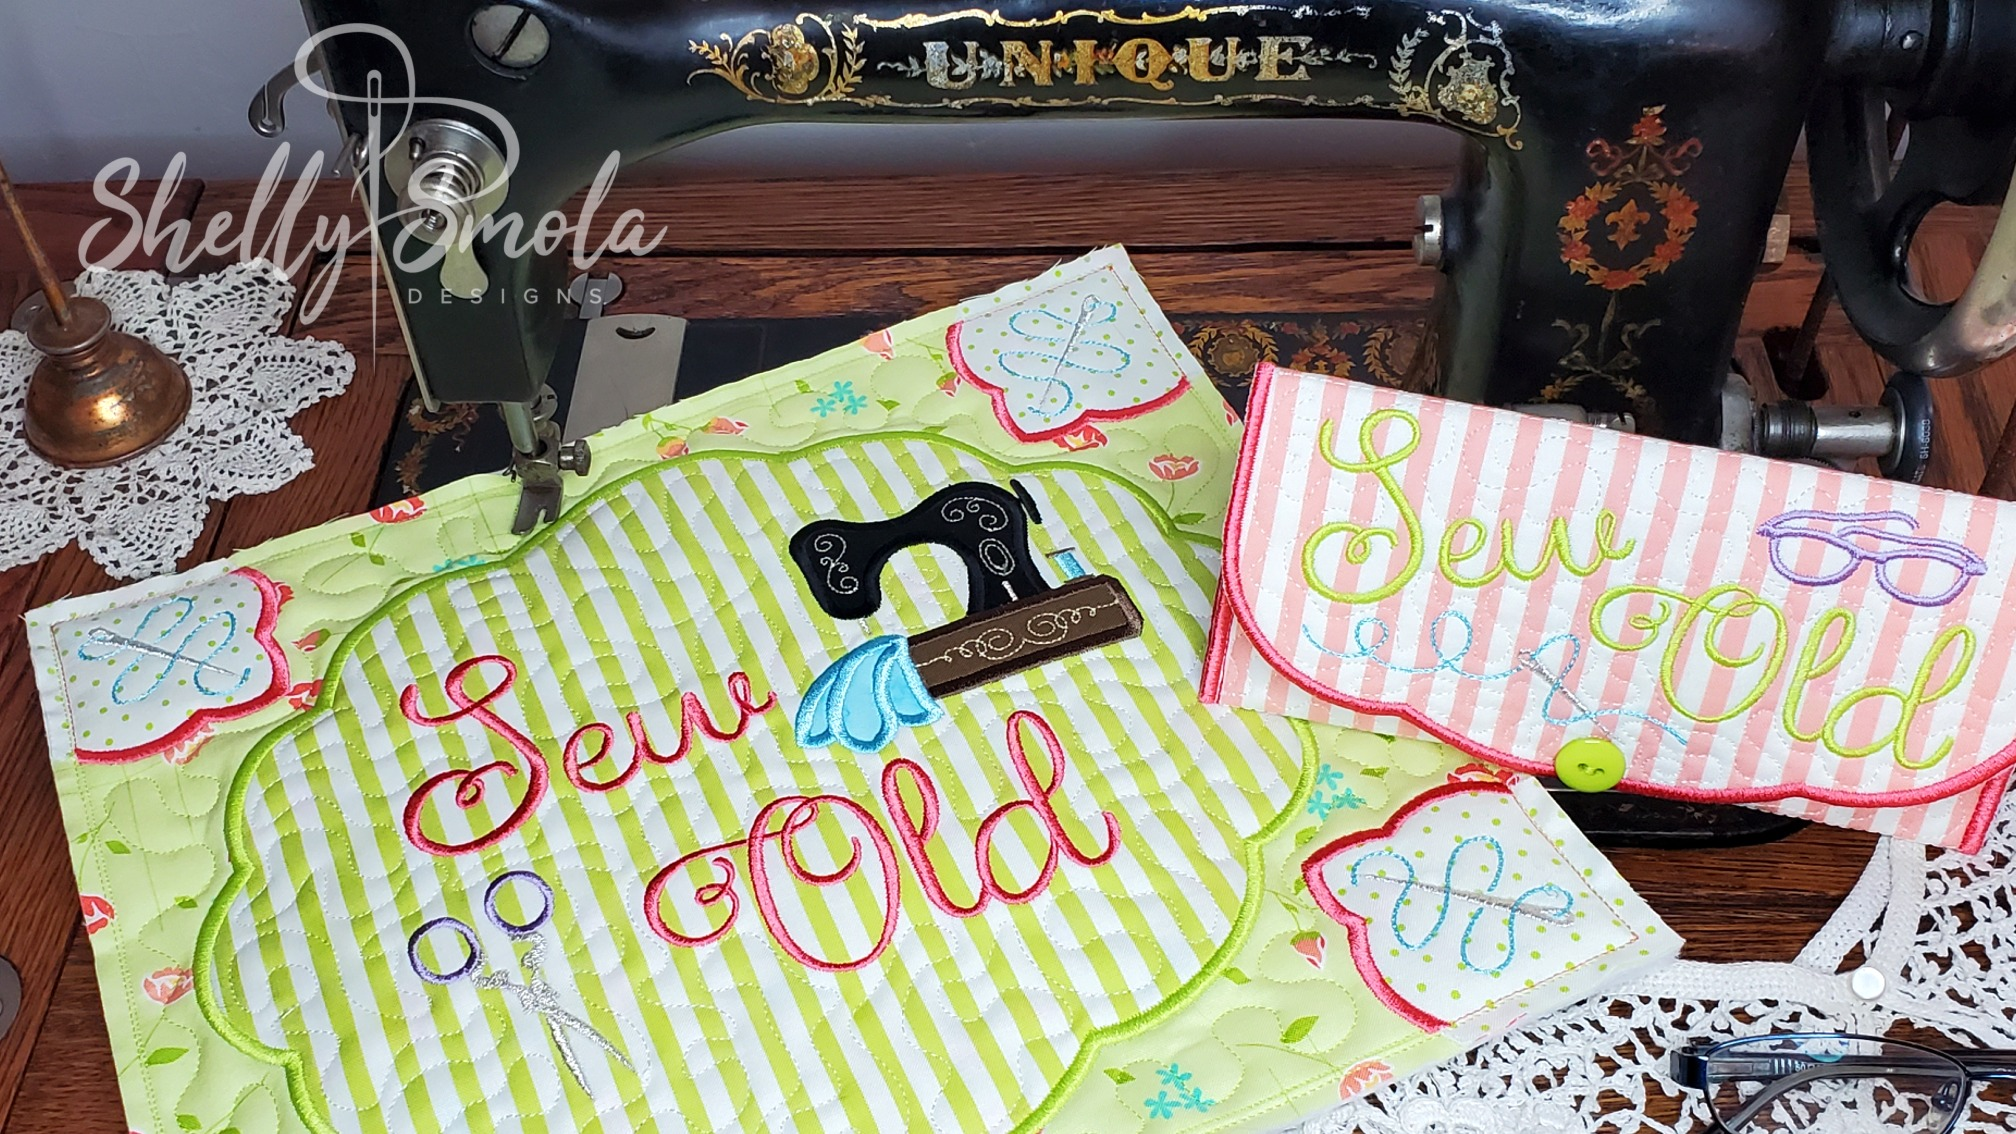 Sew Old Projects by Shelly Smola